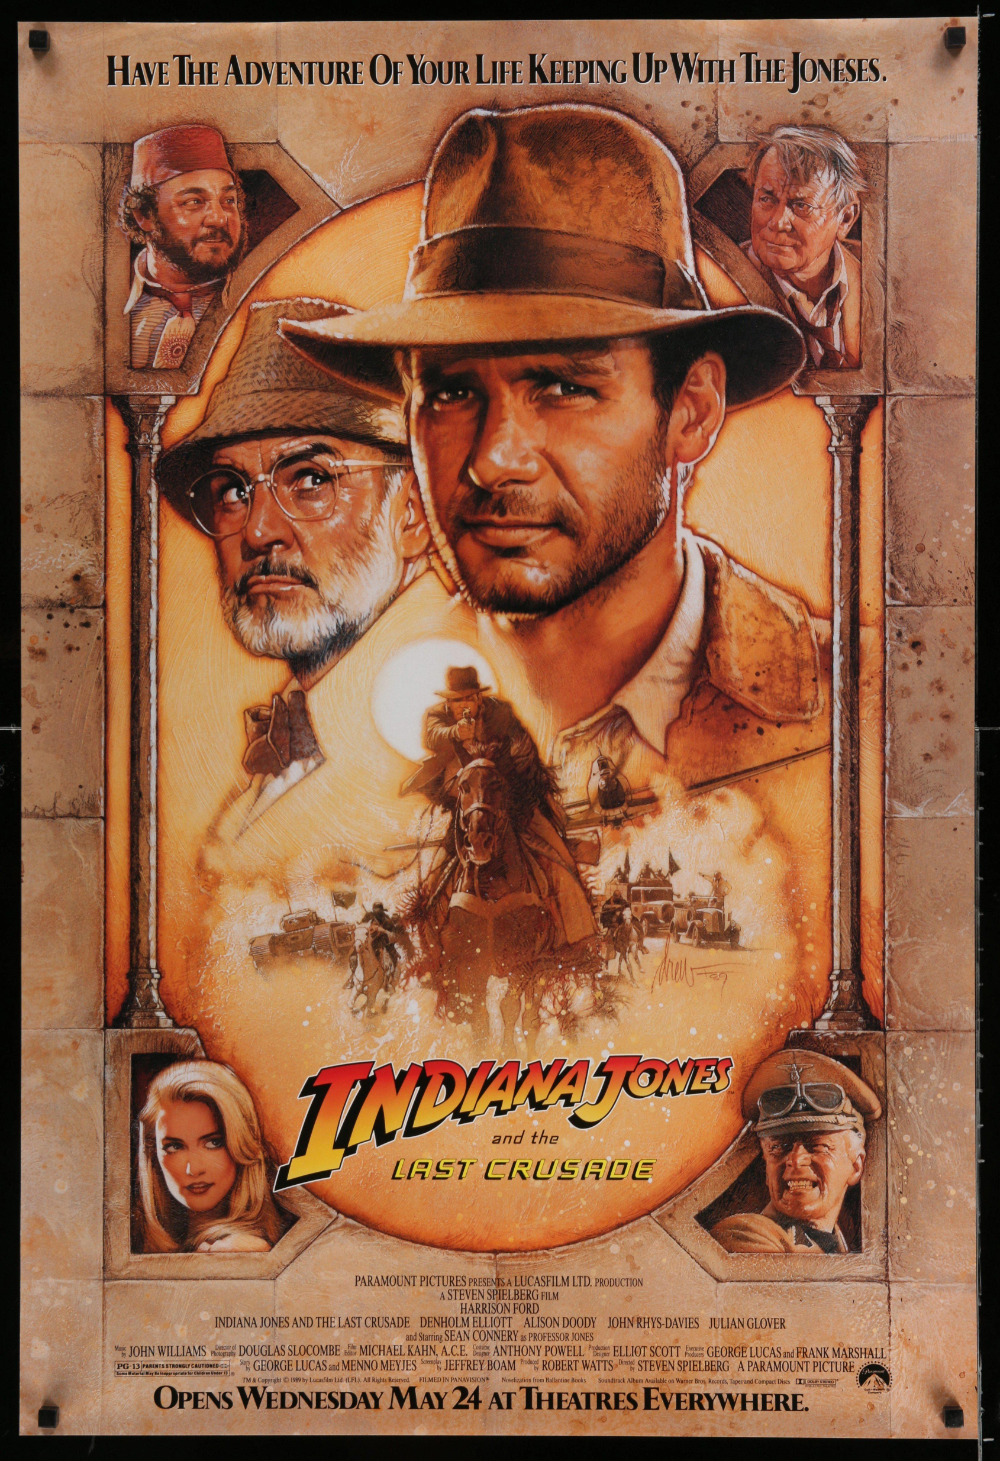 Indiana Jones And The Last Crusade In 2020 Indiana Jones Iconic Movie Posters Original Movie Posters